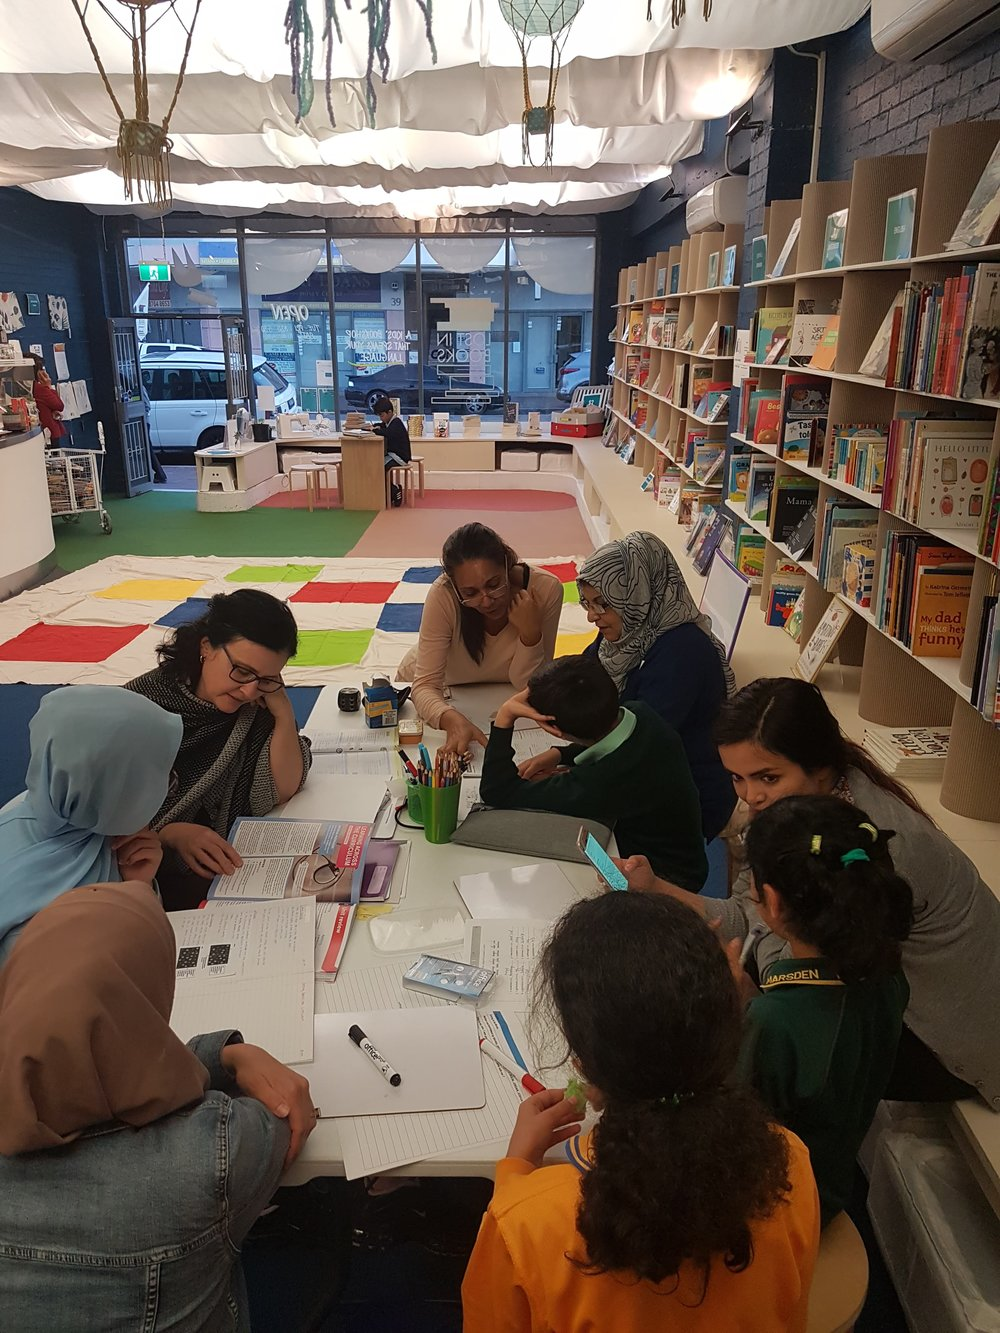 HOMEWORK CLUB - Are you a teacher, or training to become one? Are you a uni student? Or high school subject specialist? Do you have two hours a week to support newly arrived students so they can thrive in Australian schools? - Join us at LOST IN BOOKS for our Homework Club which is delivered with our community partners, the Iraqi Australian University Graduates Forum.Every Wednesday afternoon, we meet at 3:30pm for afternoon tea and relaxation. Then from 4pm - 6pm we help students (K-12) and their families to understand their homework and partner with them for success. Join us to be part of the warm welcome we extend to new Australians.